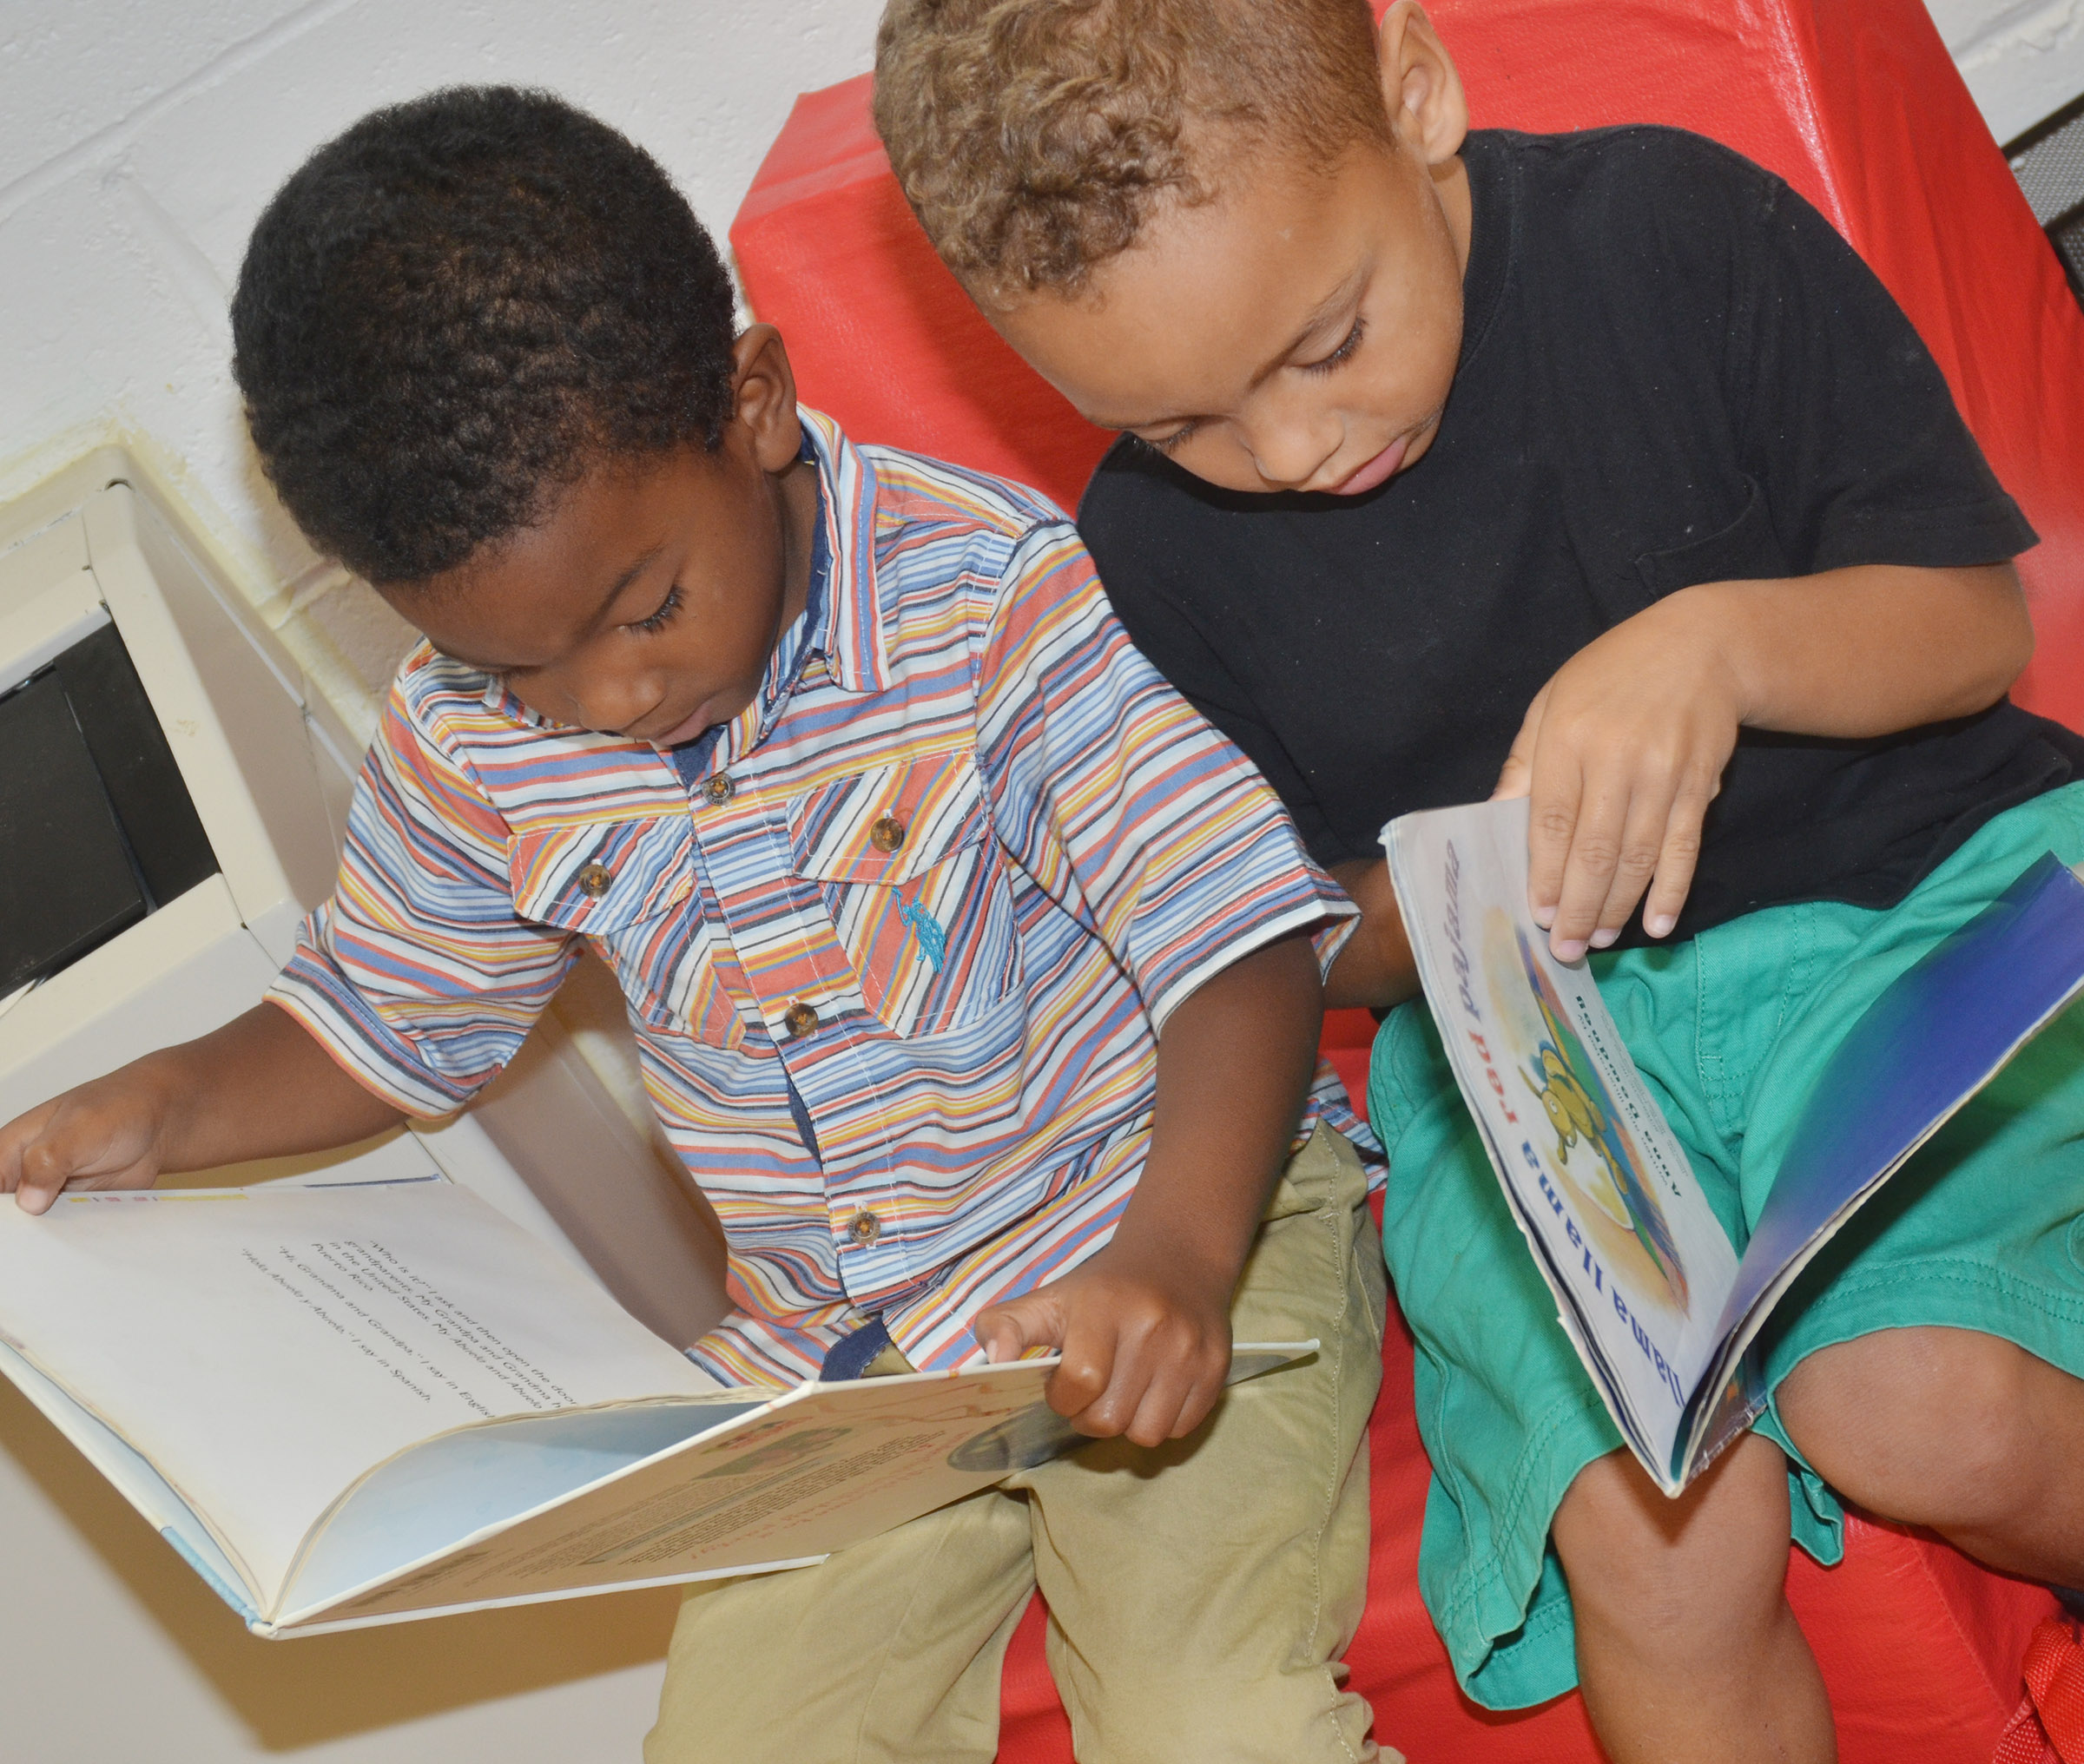 CES preschool students Rakim Dunn, at left, and Jasiahas Anderson read together.